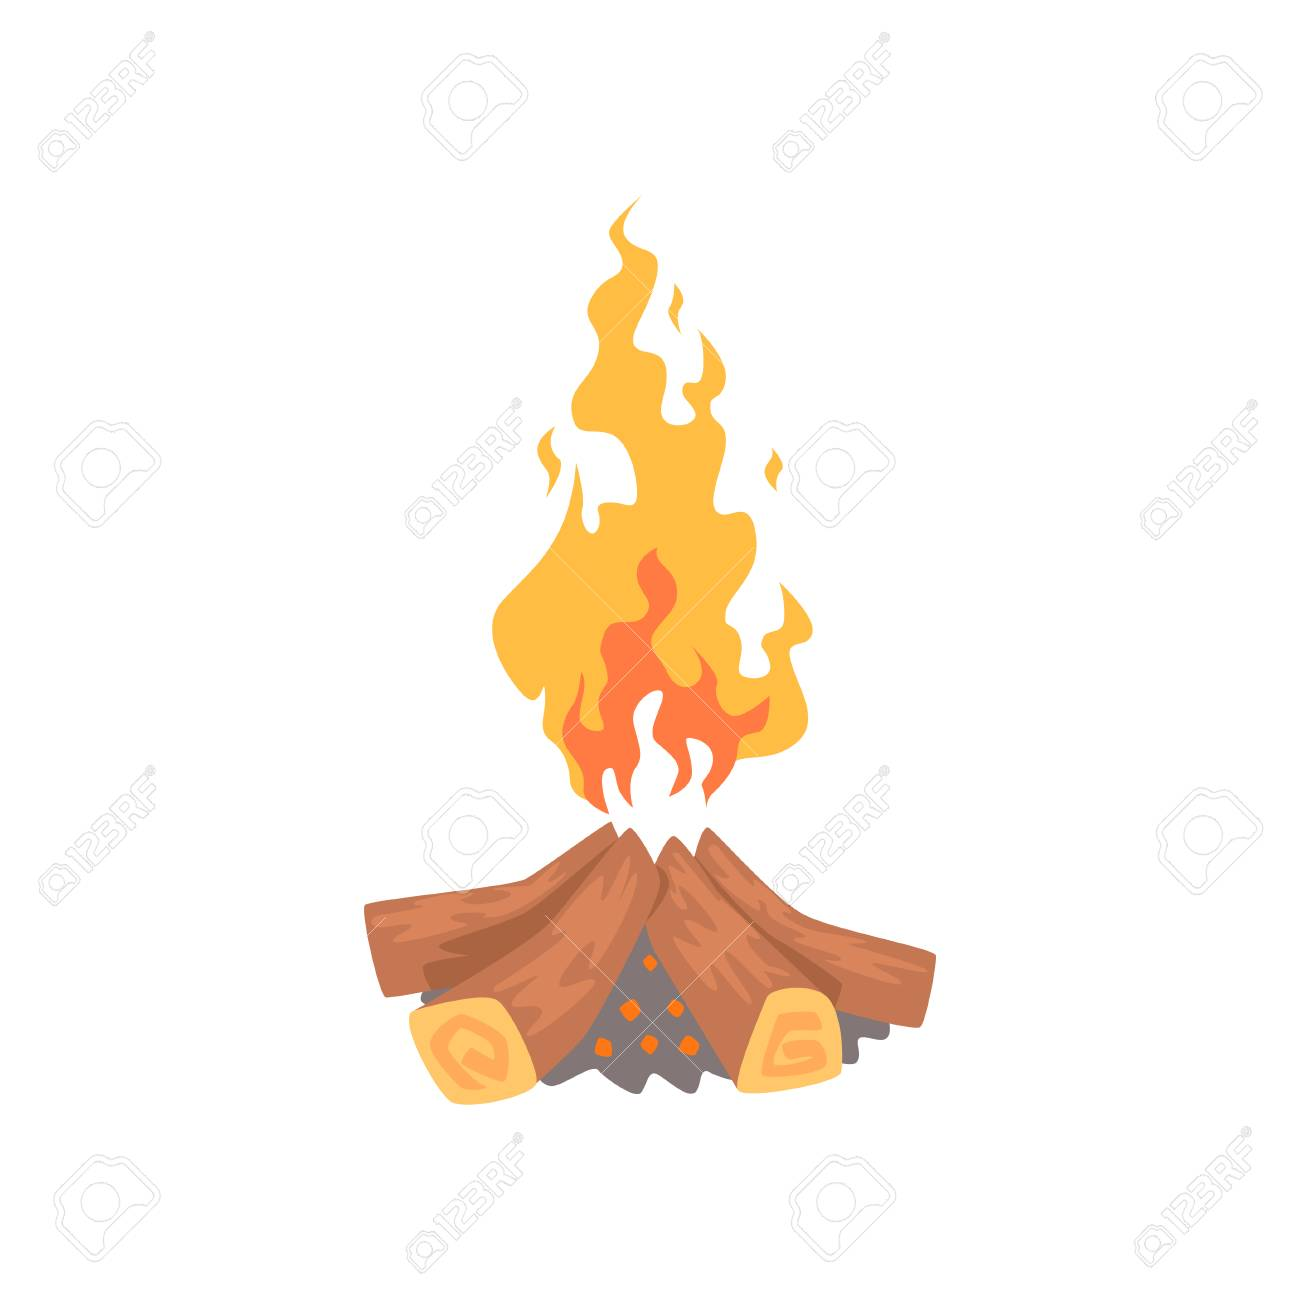 Burning Feu De Camp Feux De Camp Vecteur De Dessin Anime Clip Art